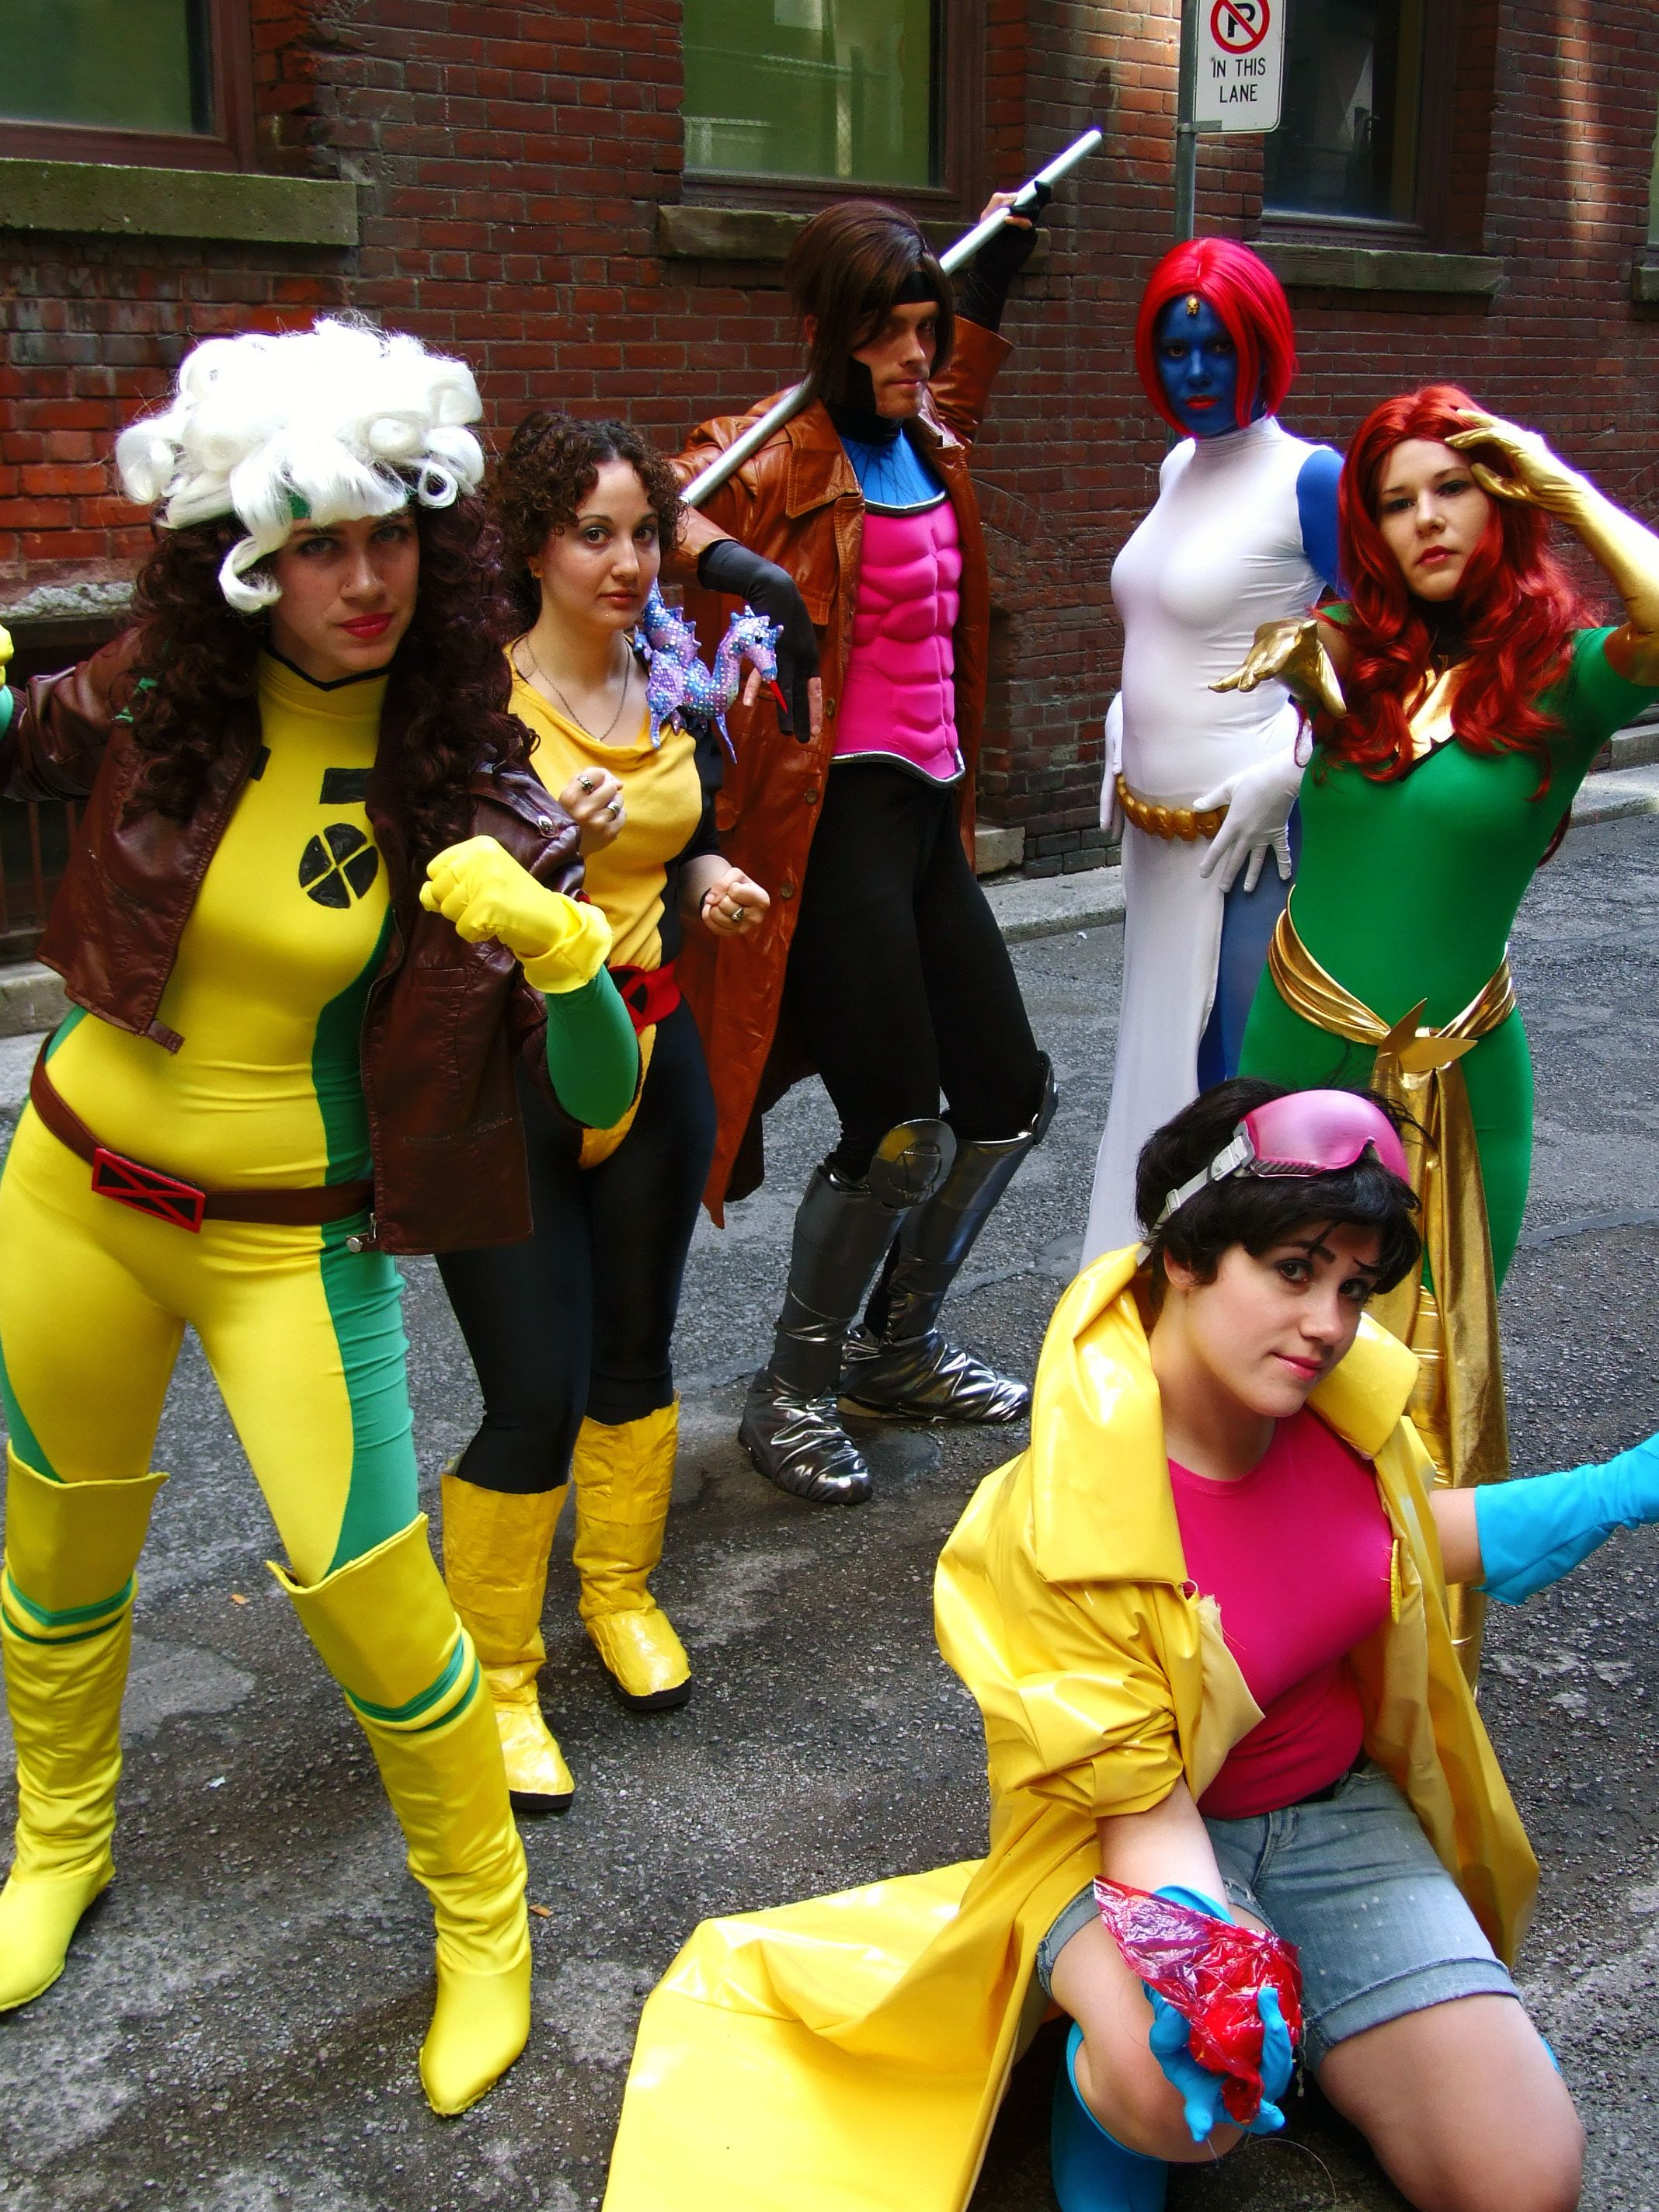 Some Awesome X Men Cosplay